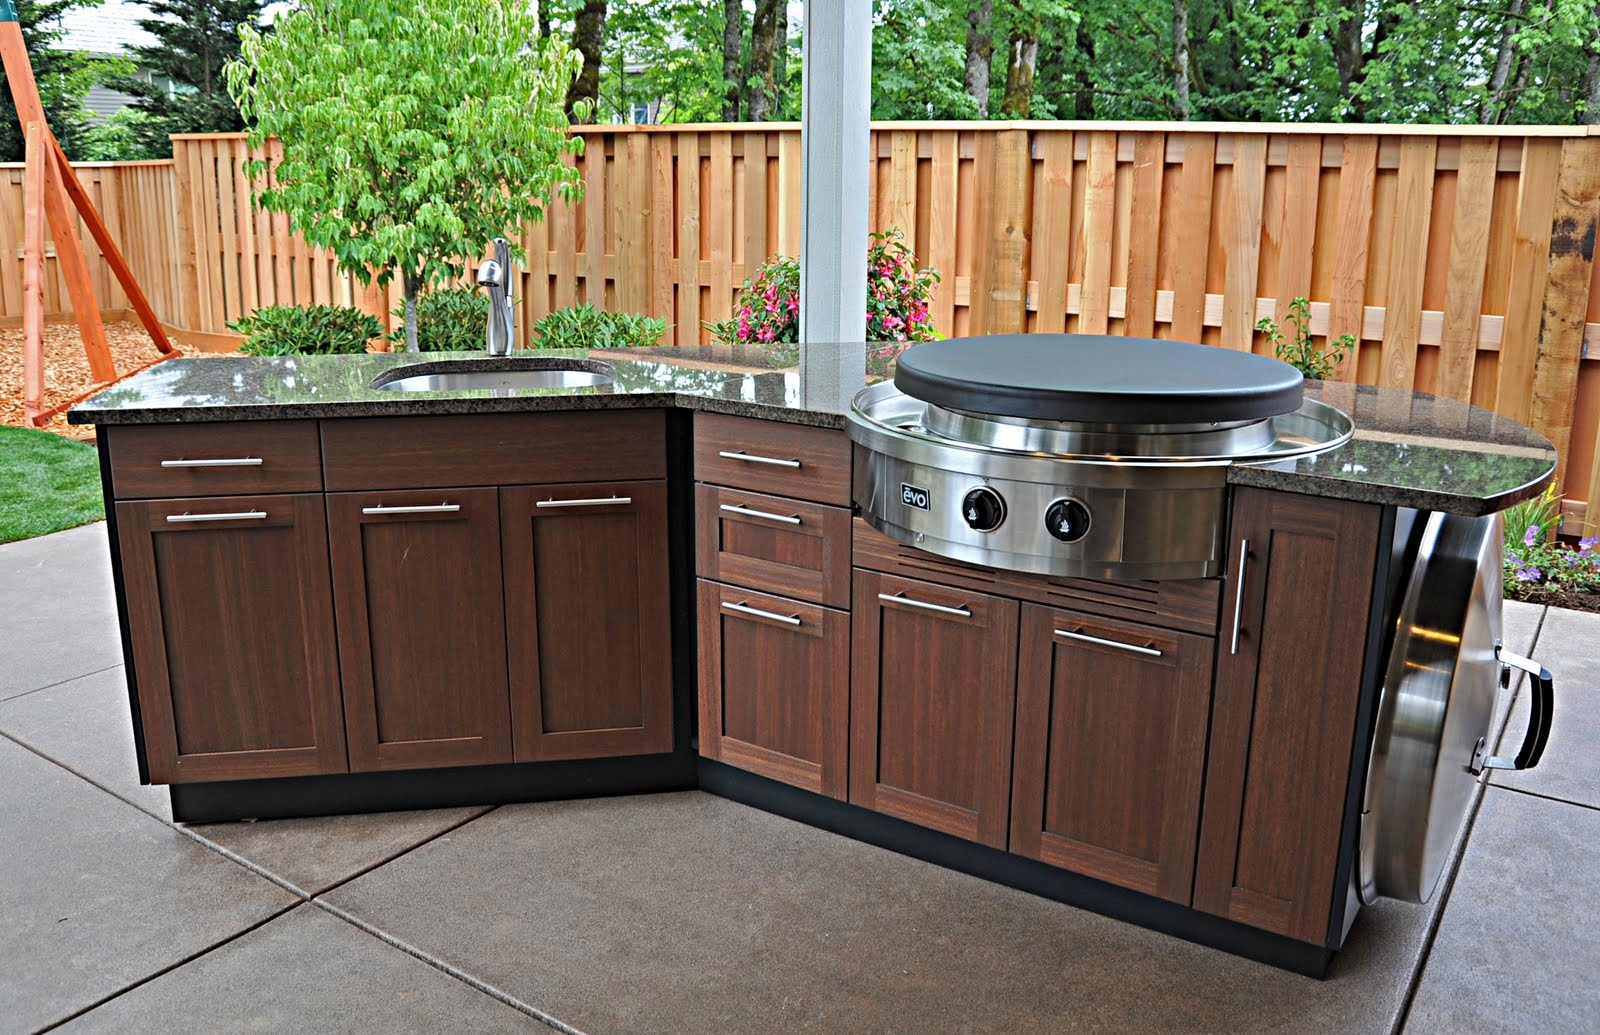 Weatherproof Cabinets For Outdoor Kitchen